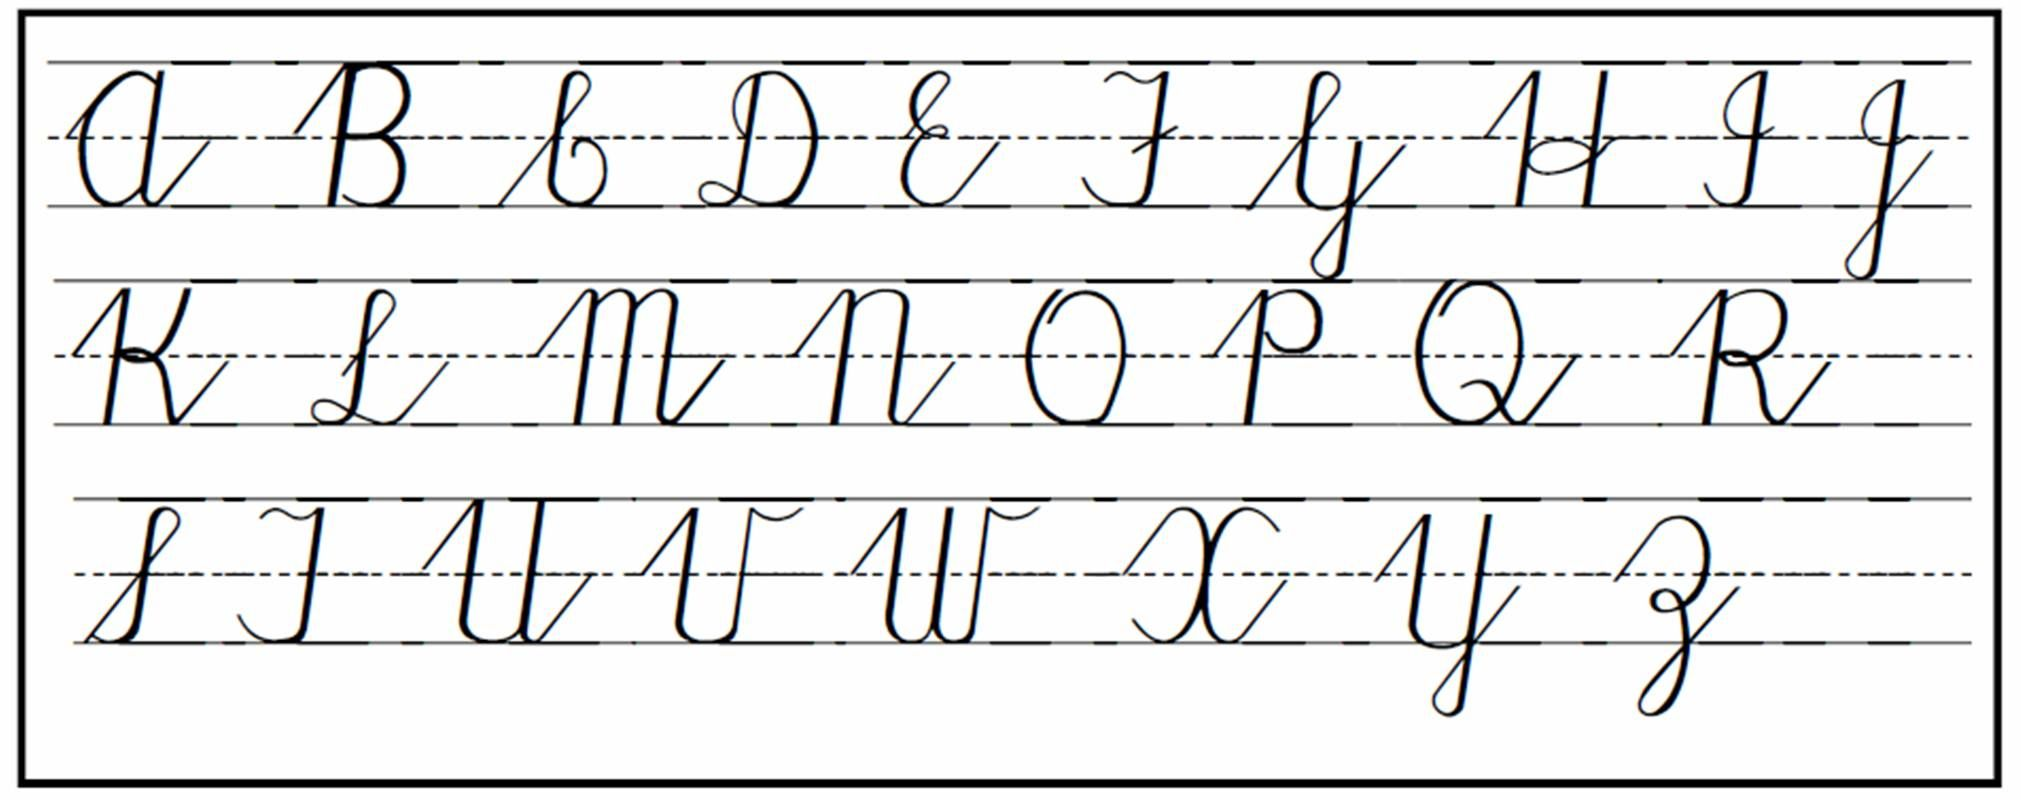 worksheet Create Cursive Writing Worksheets 10 images about cursive script on pinterest traditional alphabet and elementary schools